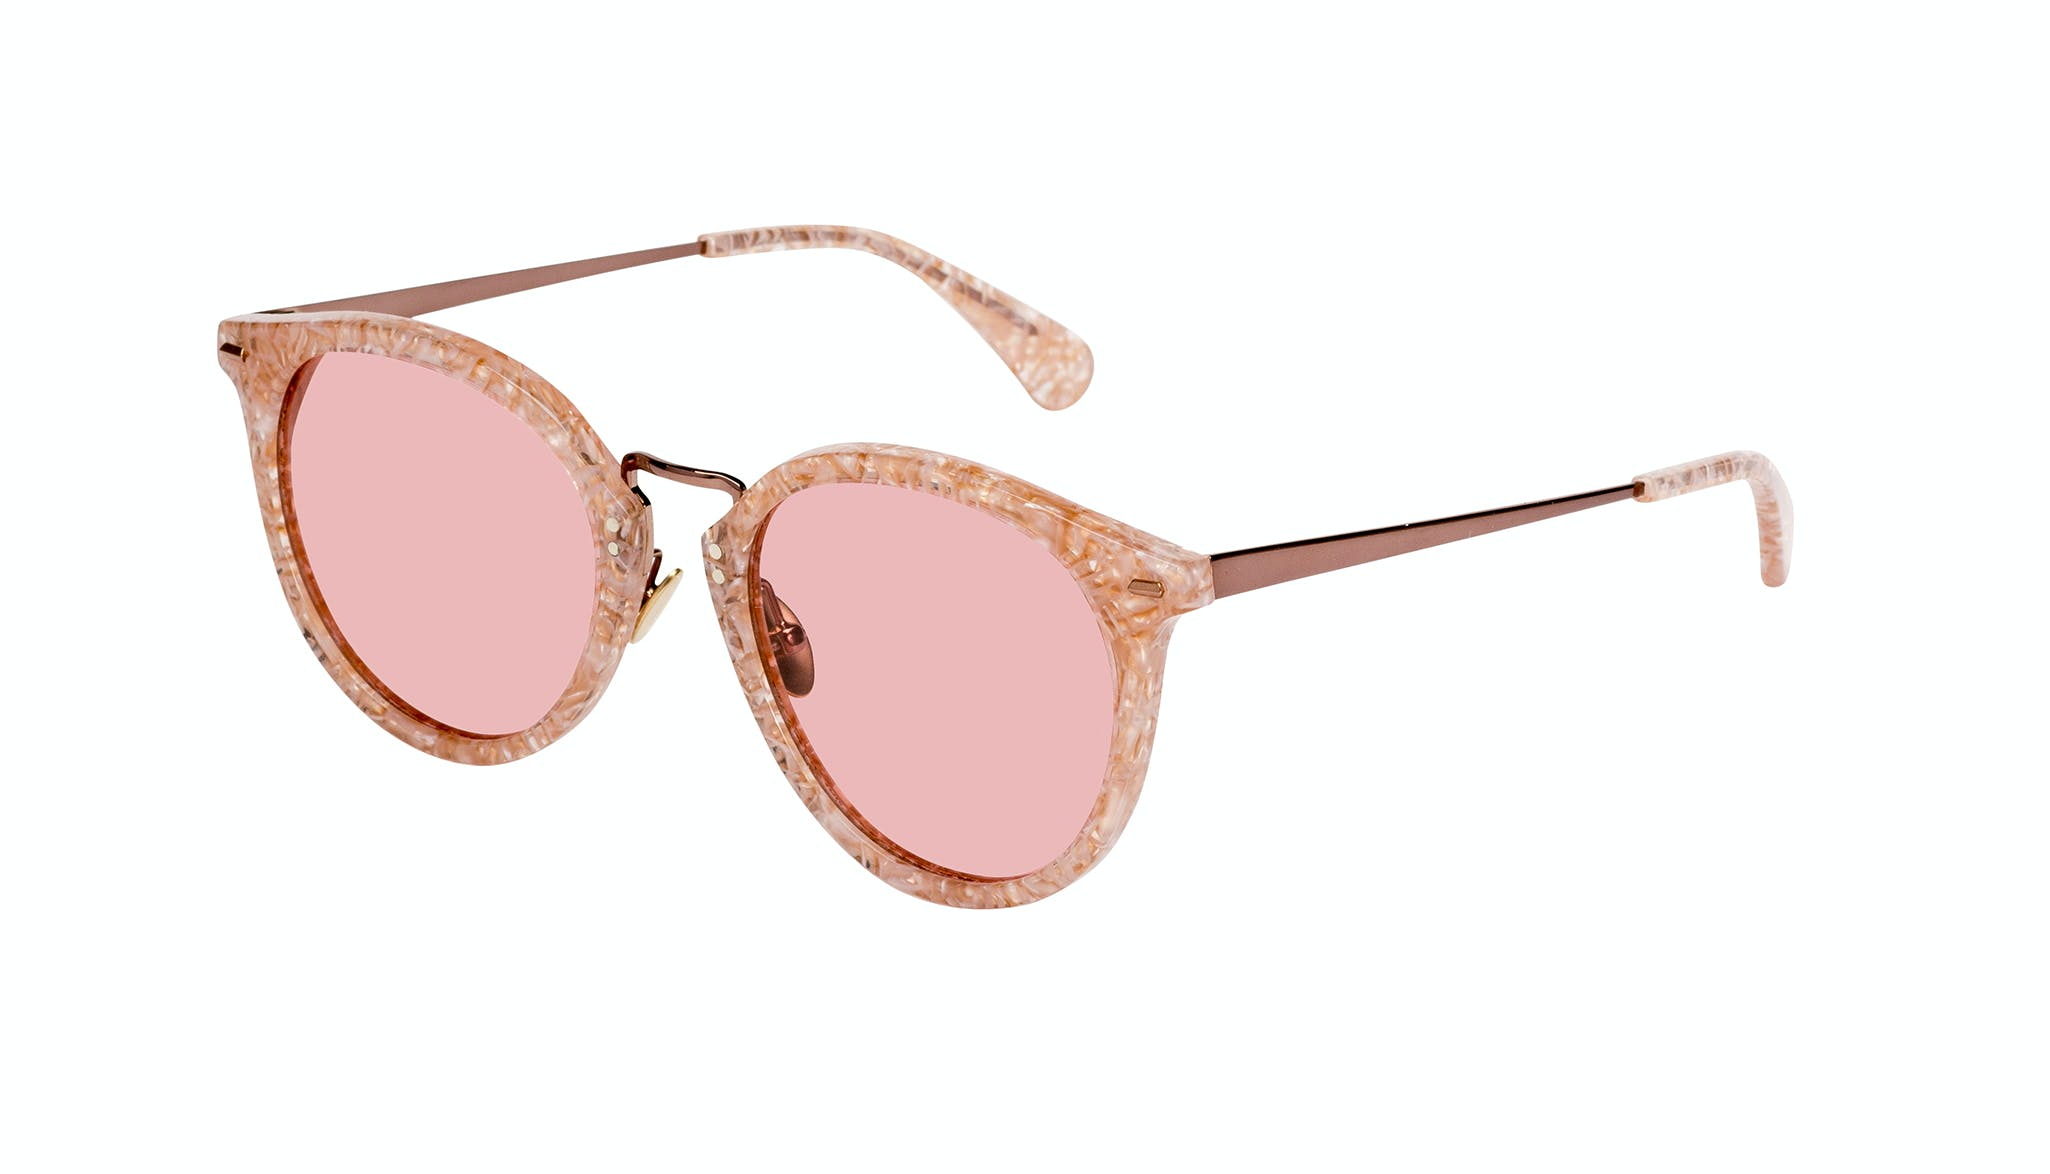 Affordable Fashion Glasses Round Sunglasses Women Poppy Provence Tilt